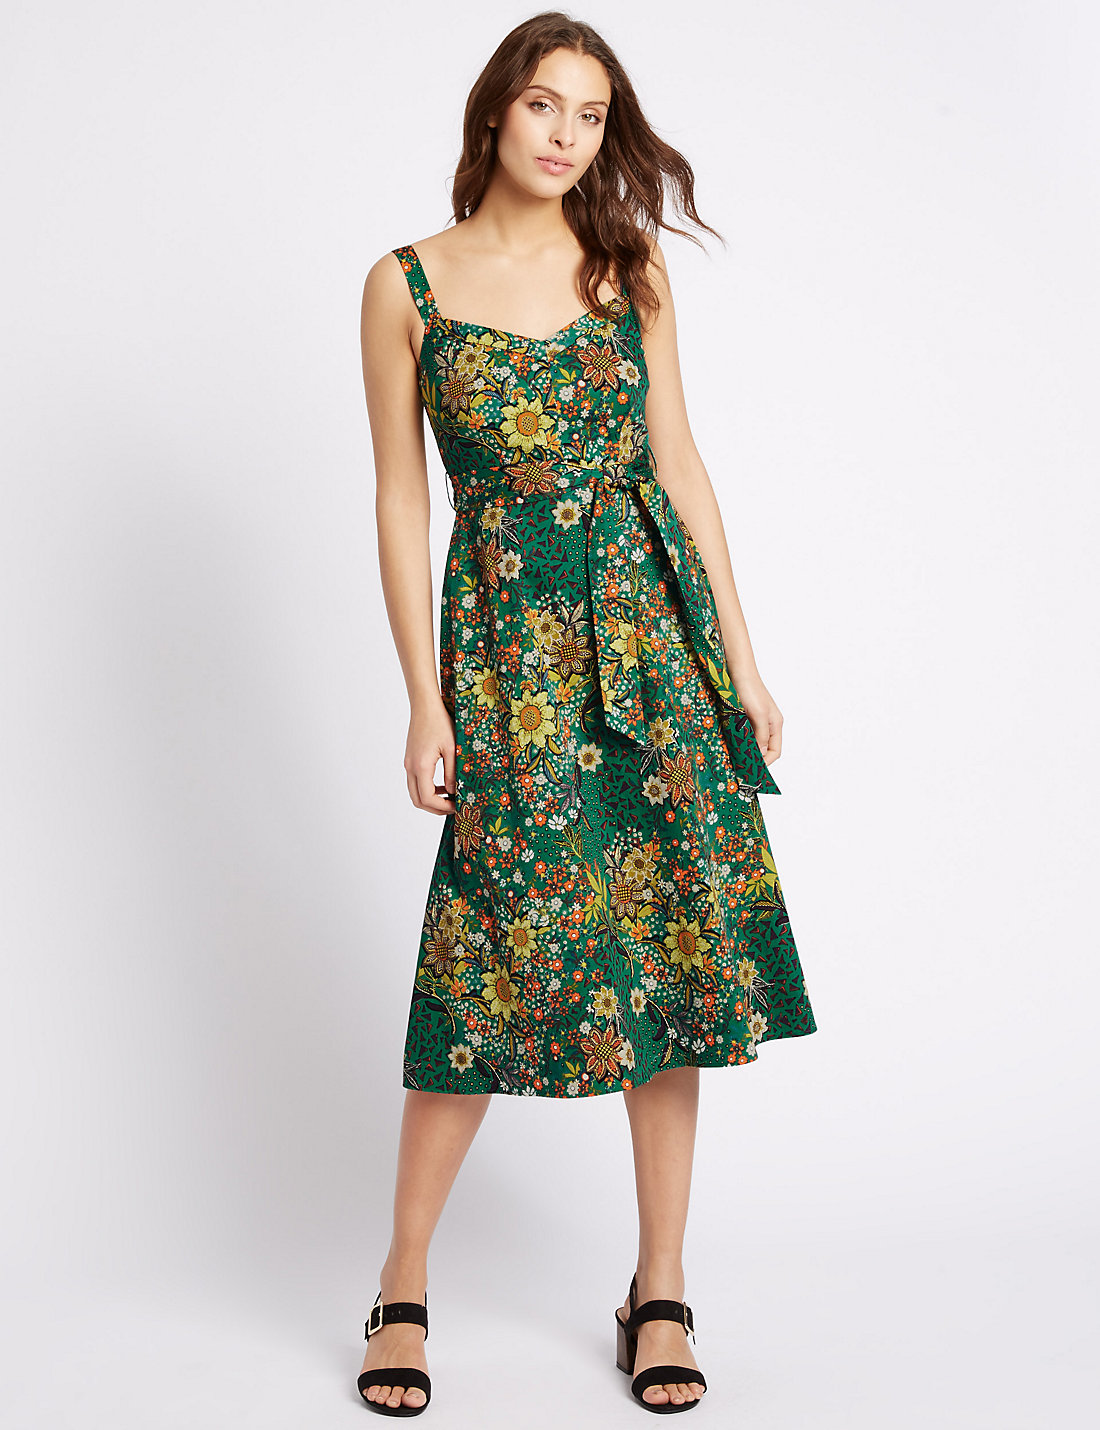 M&S  £55.00 such a cute dress. Reminds me of something from A Roman Holiday, you can really dress this up and run with a 50s vibe or keep it low key and natural for a casual wedding.